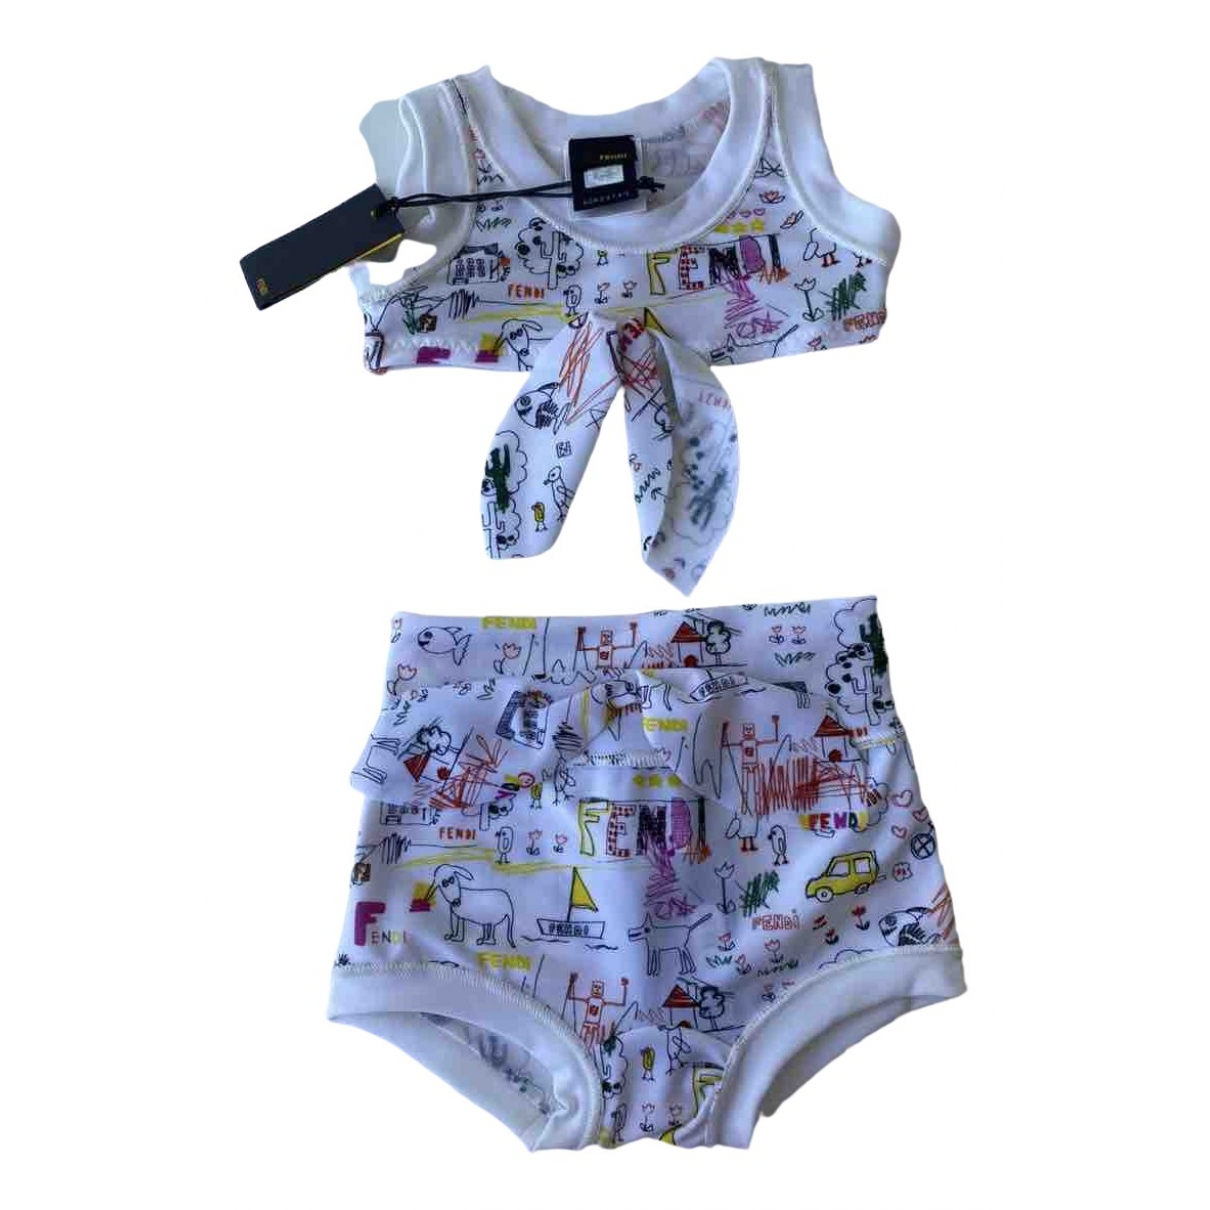 Fendi \N Multicolour Outfits for Kids 3 months - up to 60cm FR